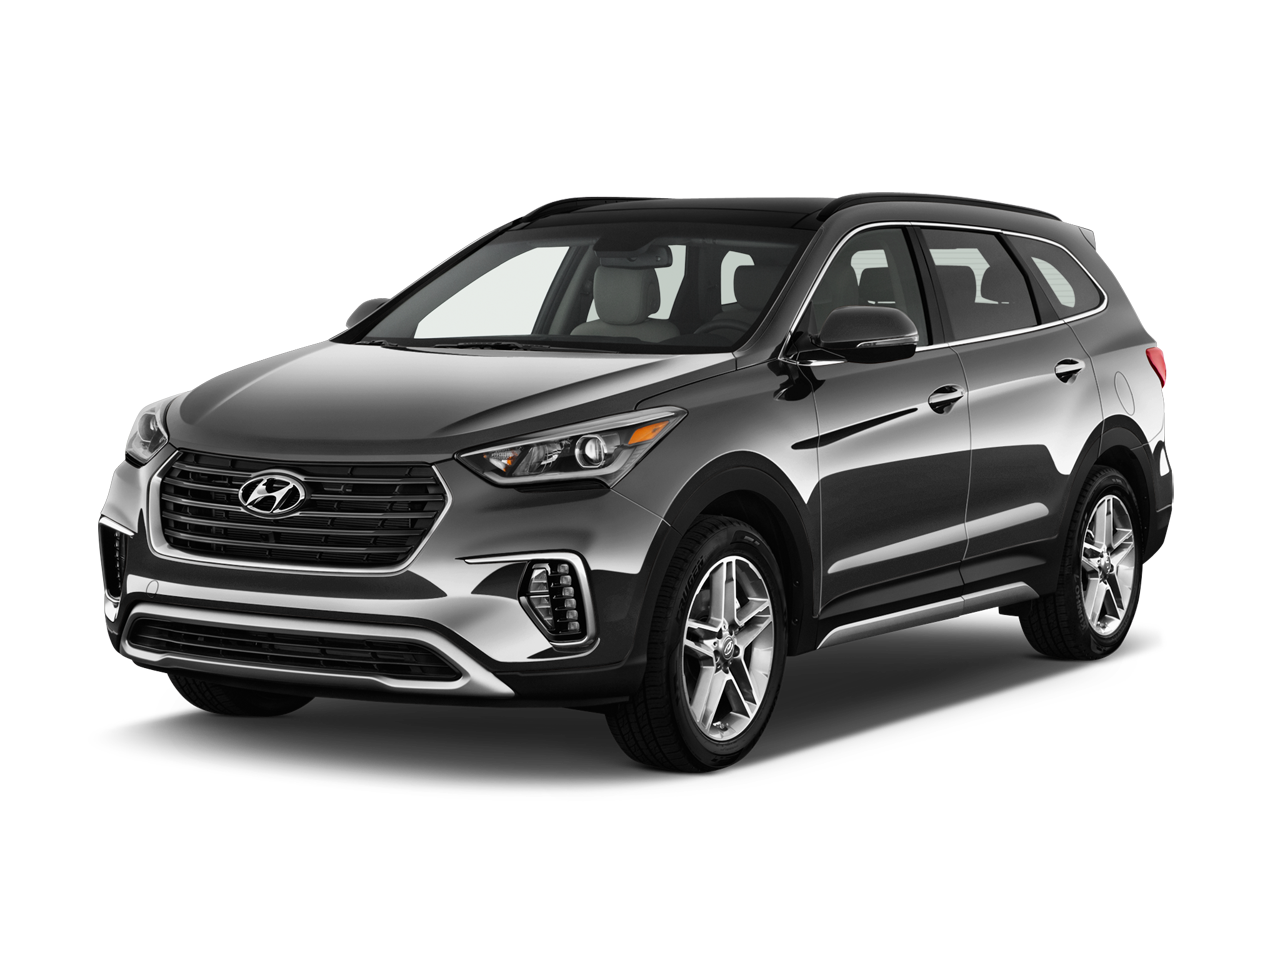 2017 hyundai santa fe for lease in capitol heights md pohanka hyundai of capitol heights. Black Bedroom Furniture Sets. Home Design Ideas